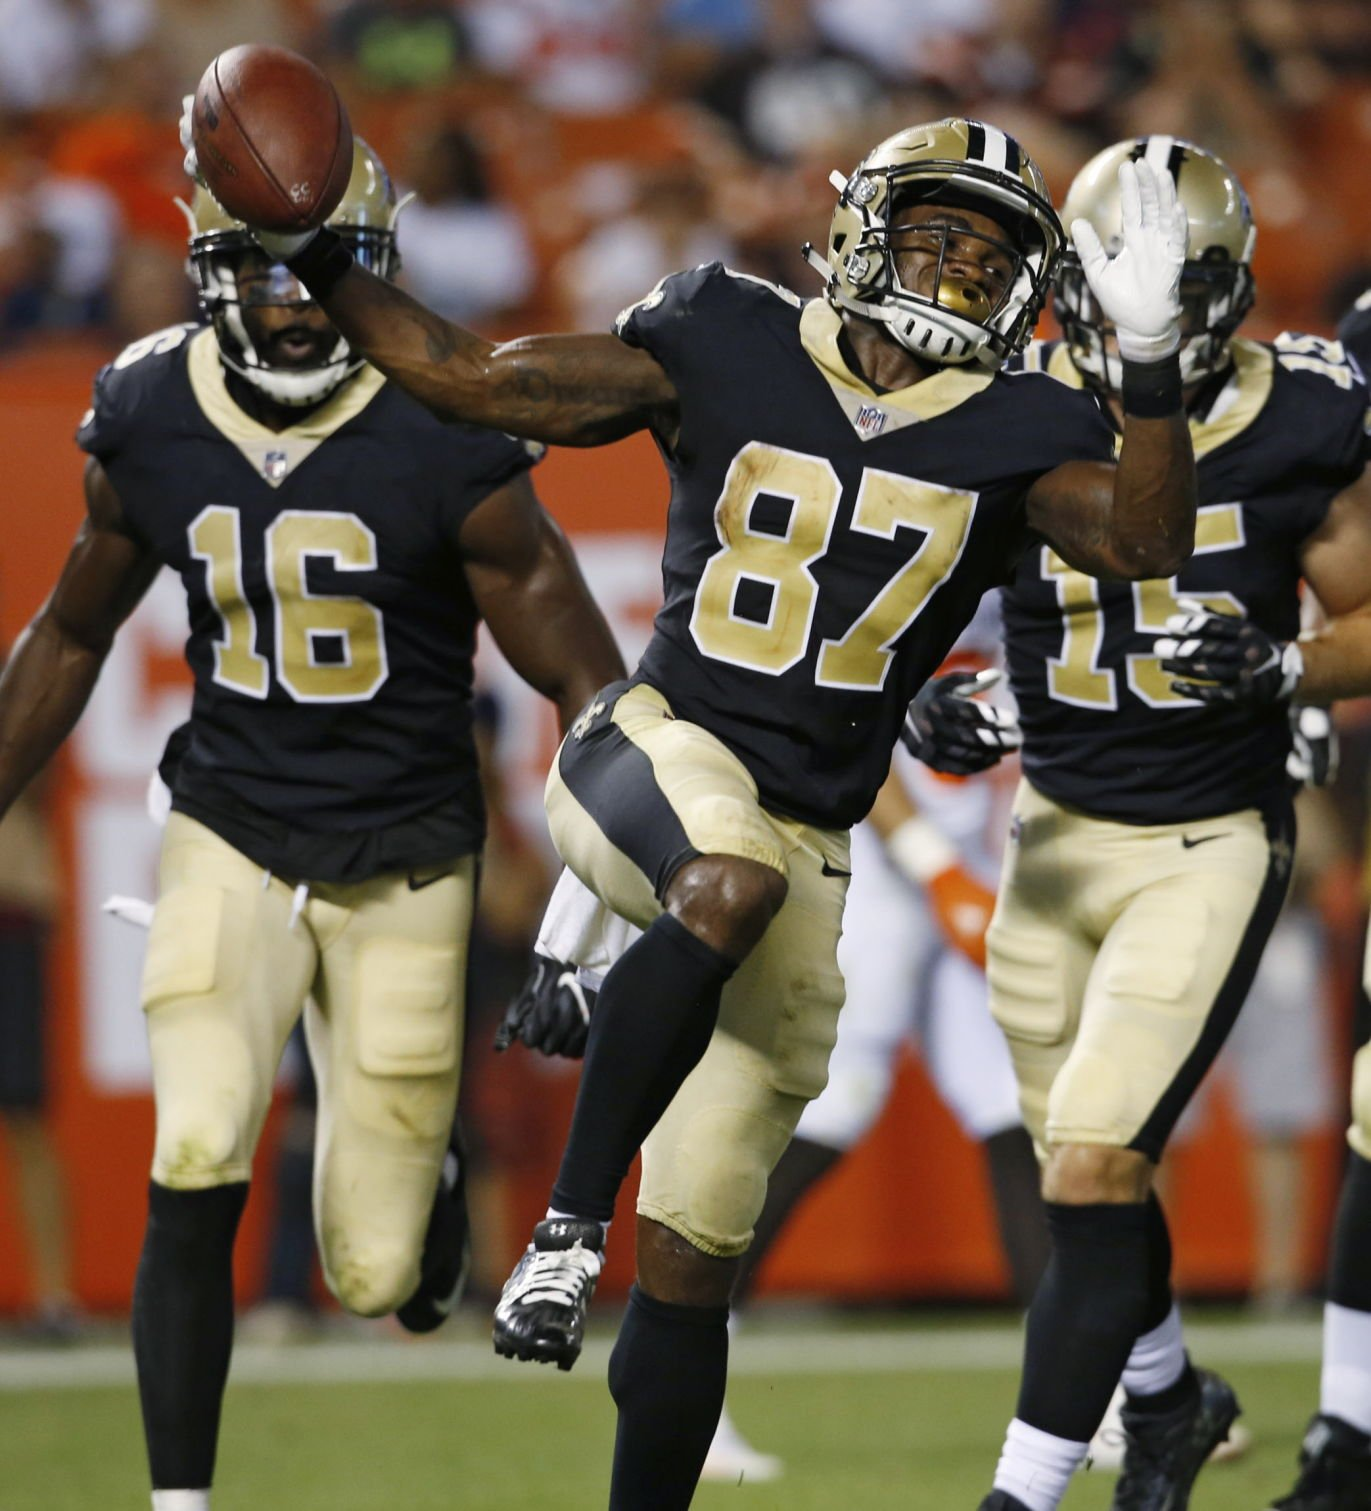 Saints veterans to watch in first preseason game August 10 vs. Browns